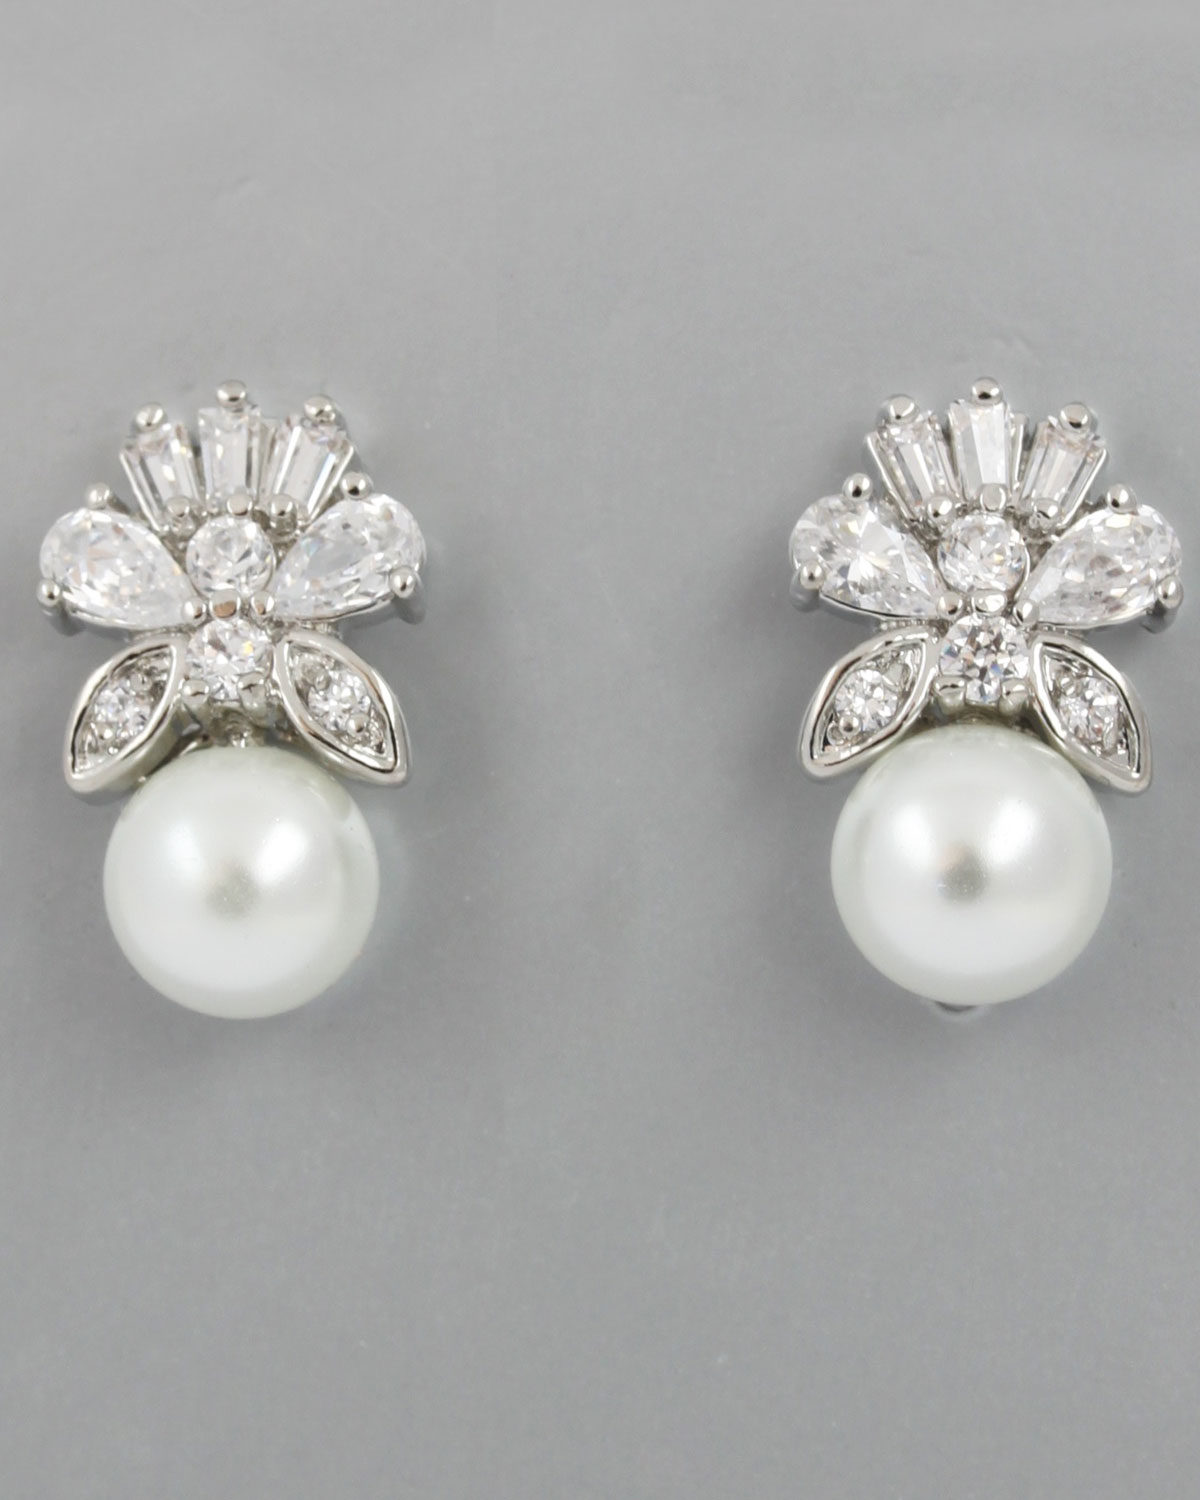 EA01-017 MAJESTIC PEARL EARRINGS